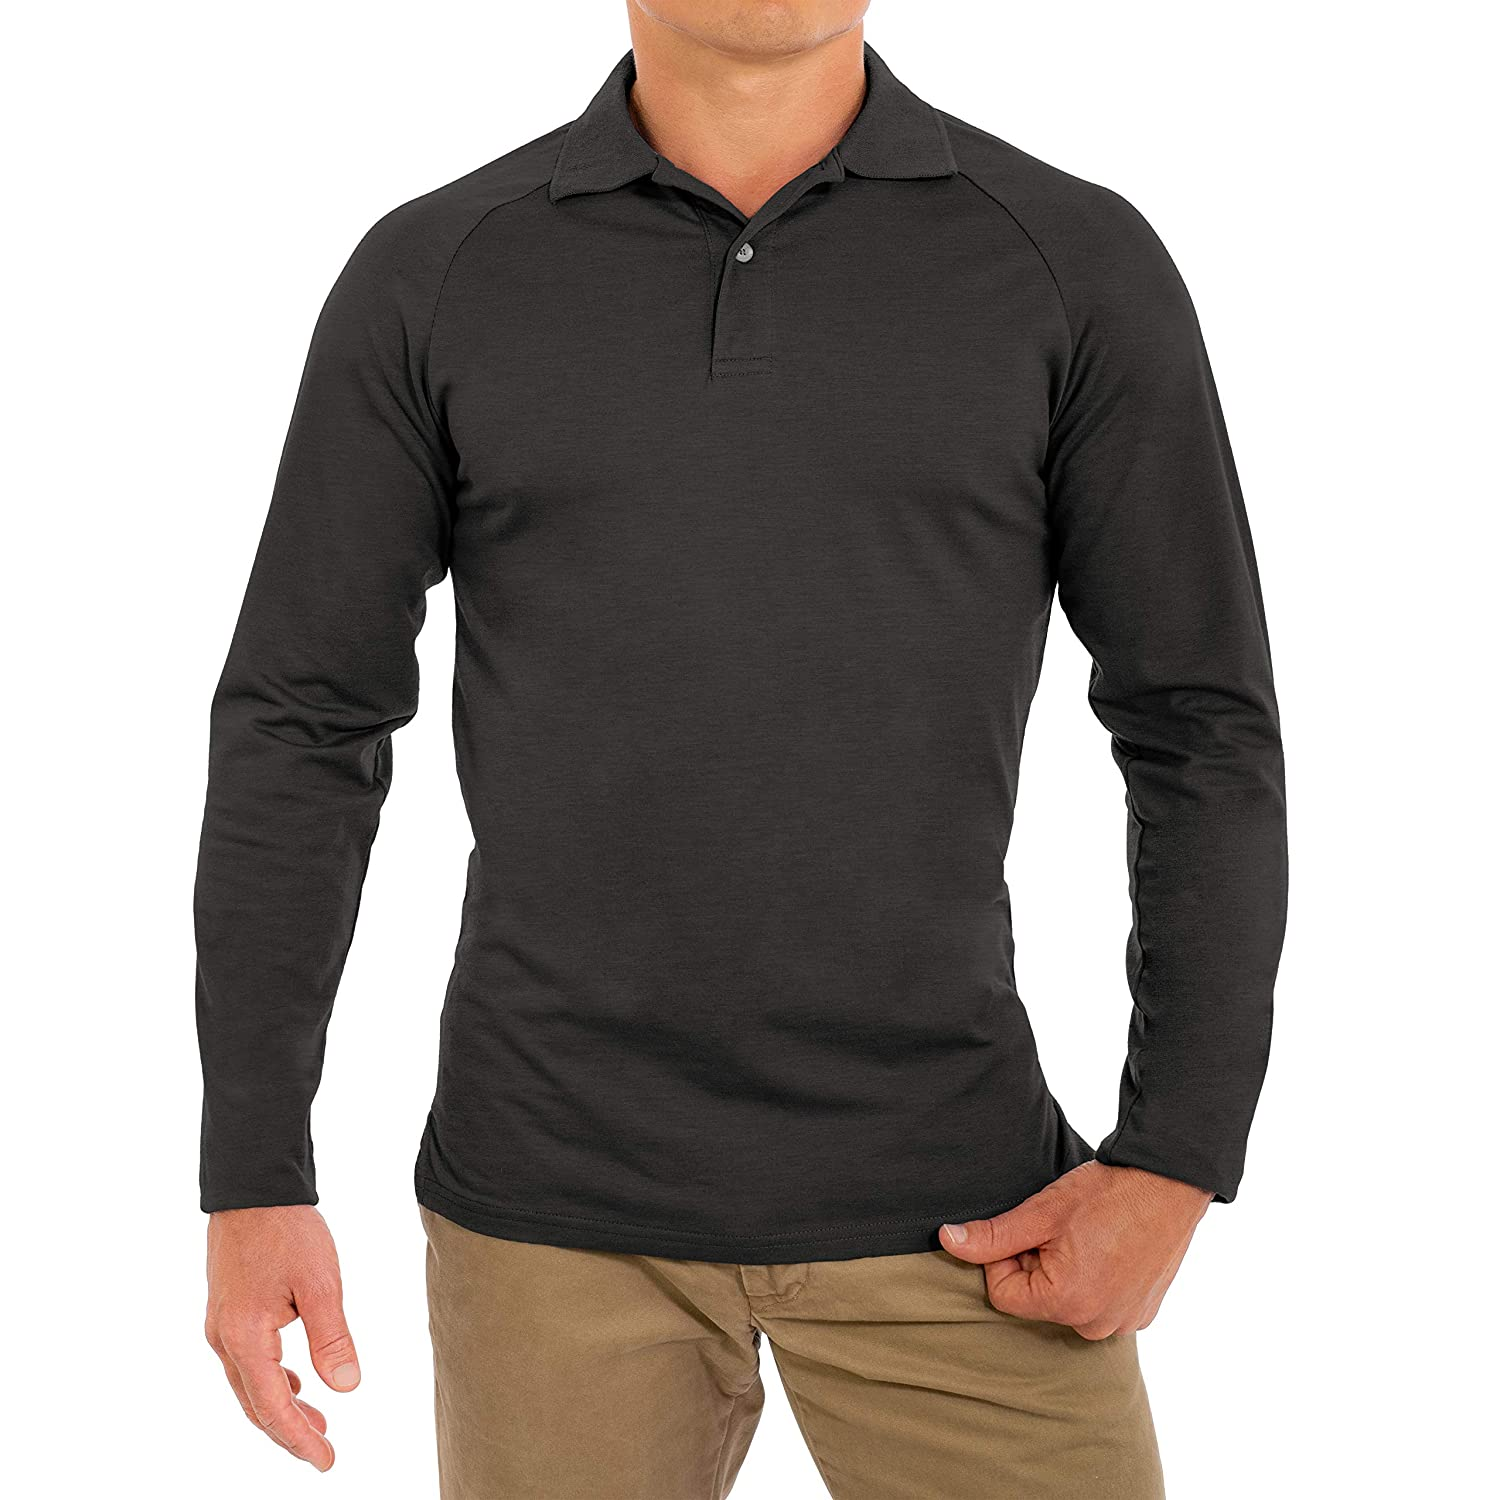 Soft Fitted Breathable Mens Long Sleeve Polo Shirts CC Perfect Slim Fit Long Sleeve Polo Shirts for Men